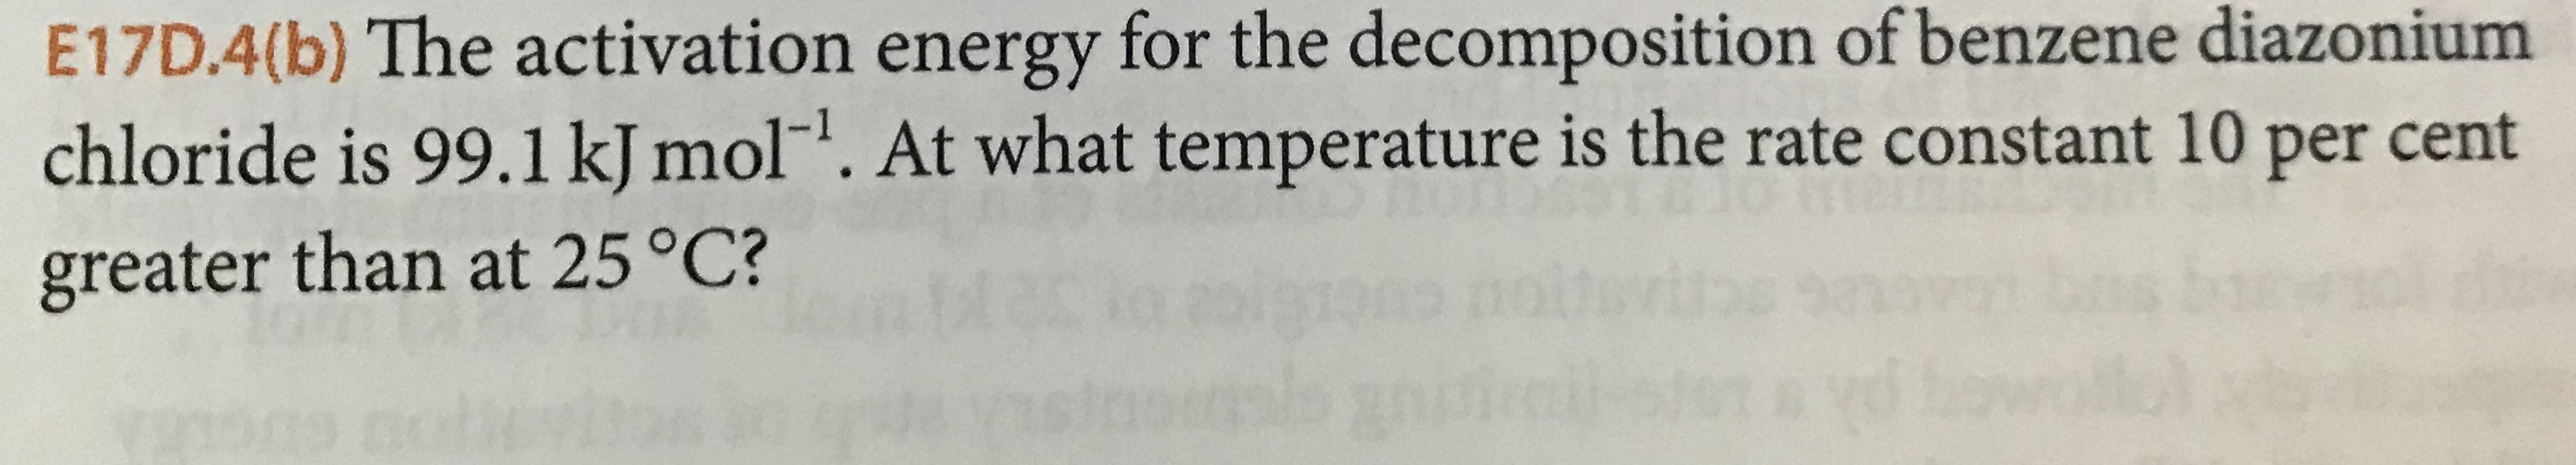 """E17D.4(b) The activation energy for the decomposition ofbenzene diazonium chloride is 99.1 kJ mol"""". At what temperature is the rate constant 10 per cent greater than at 25 °C? 16"""